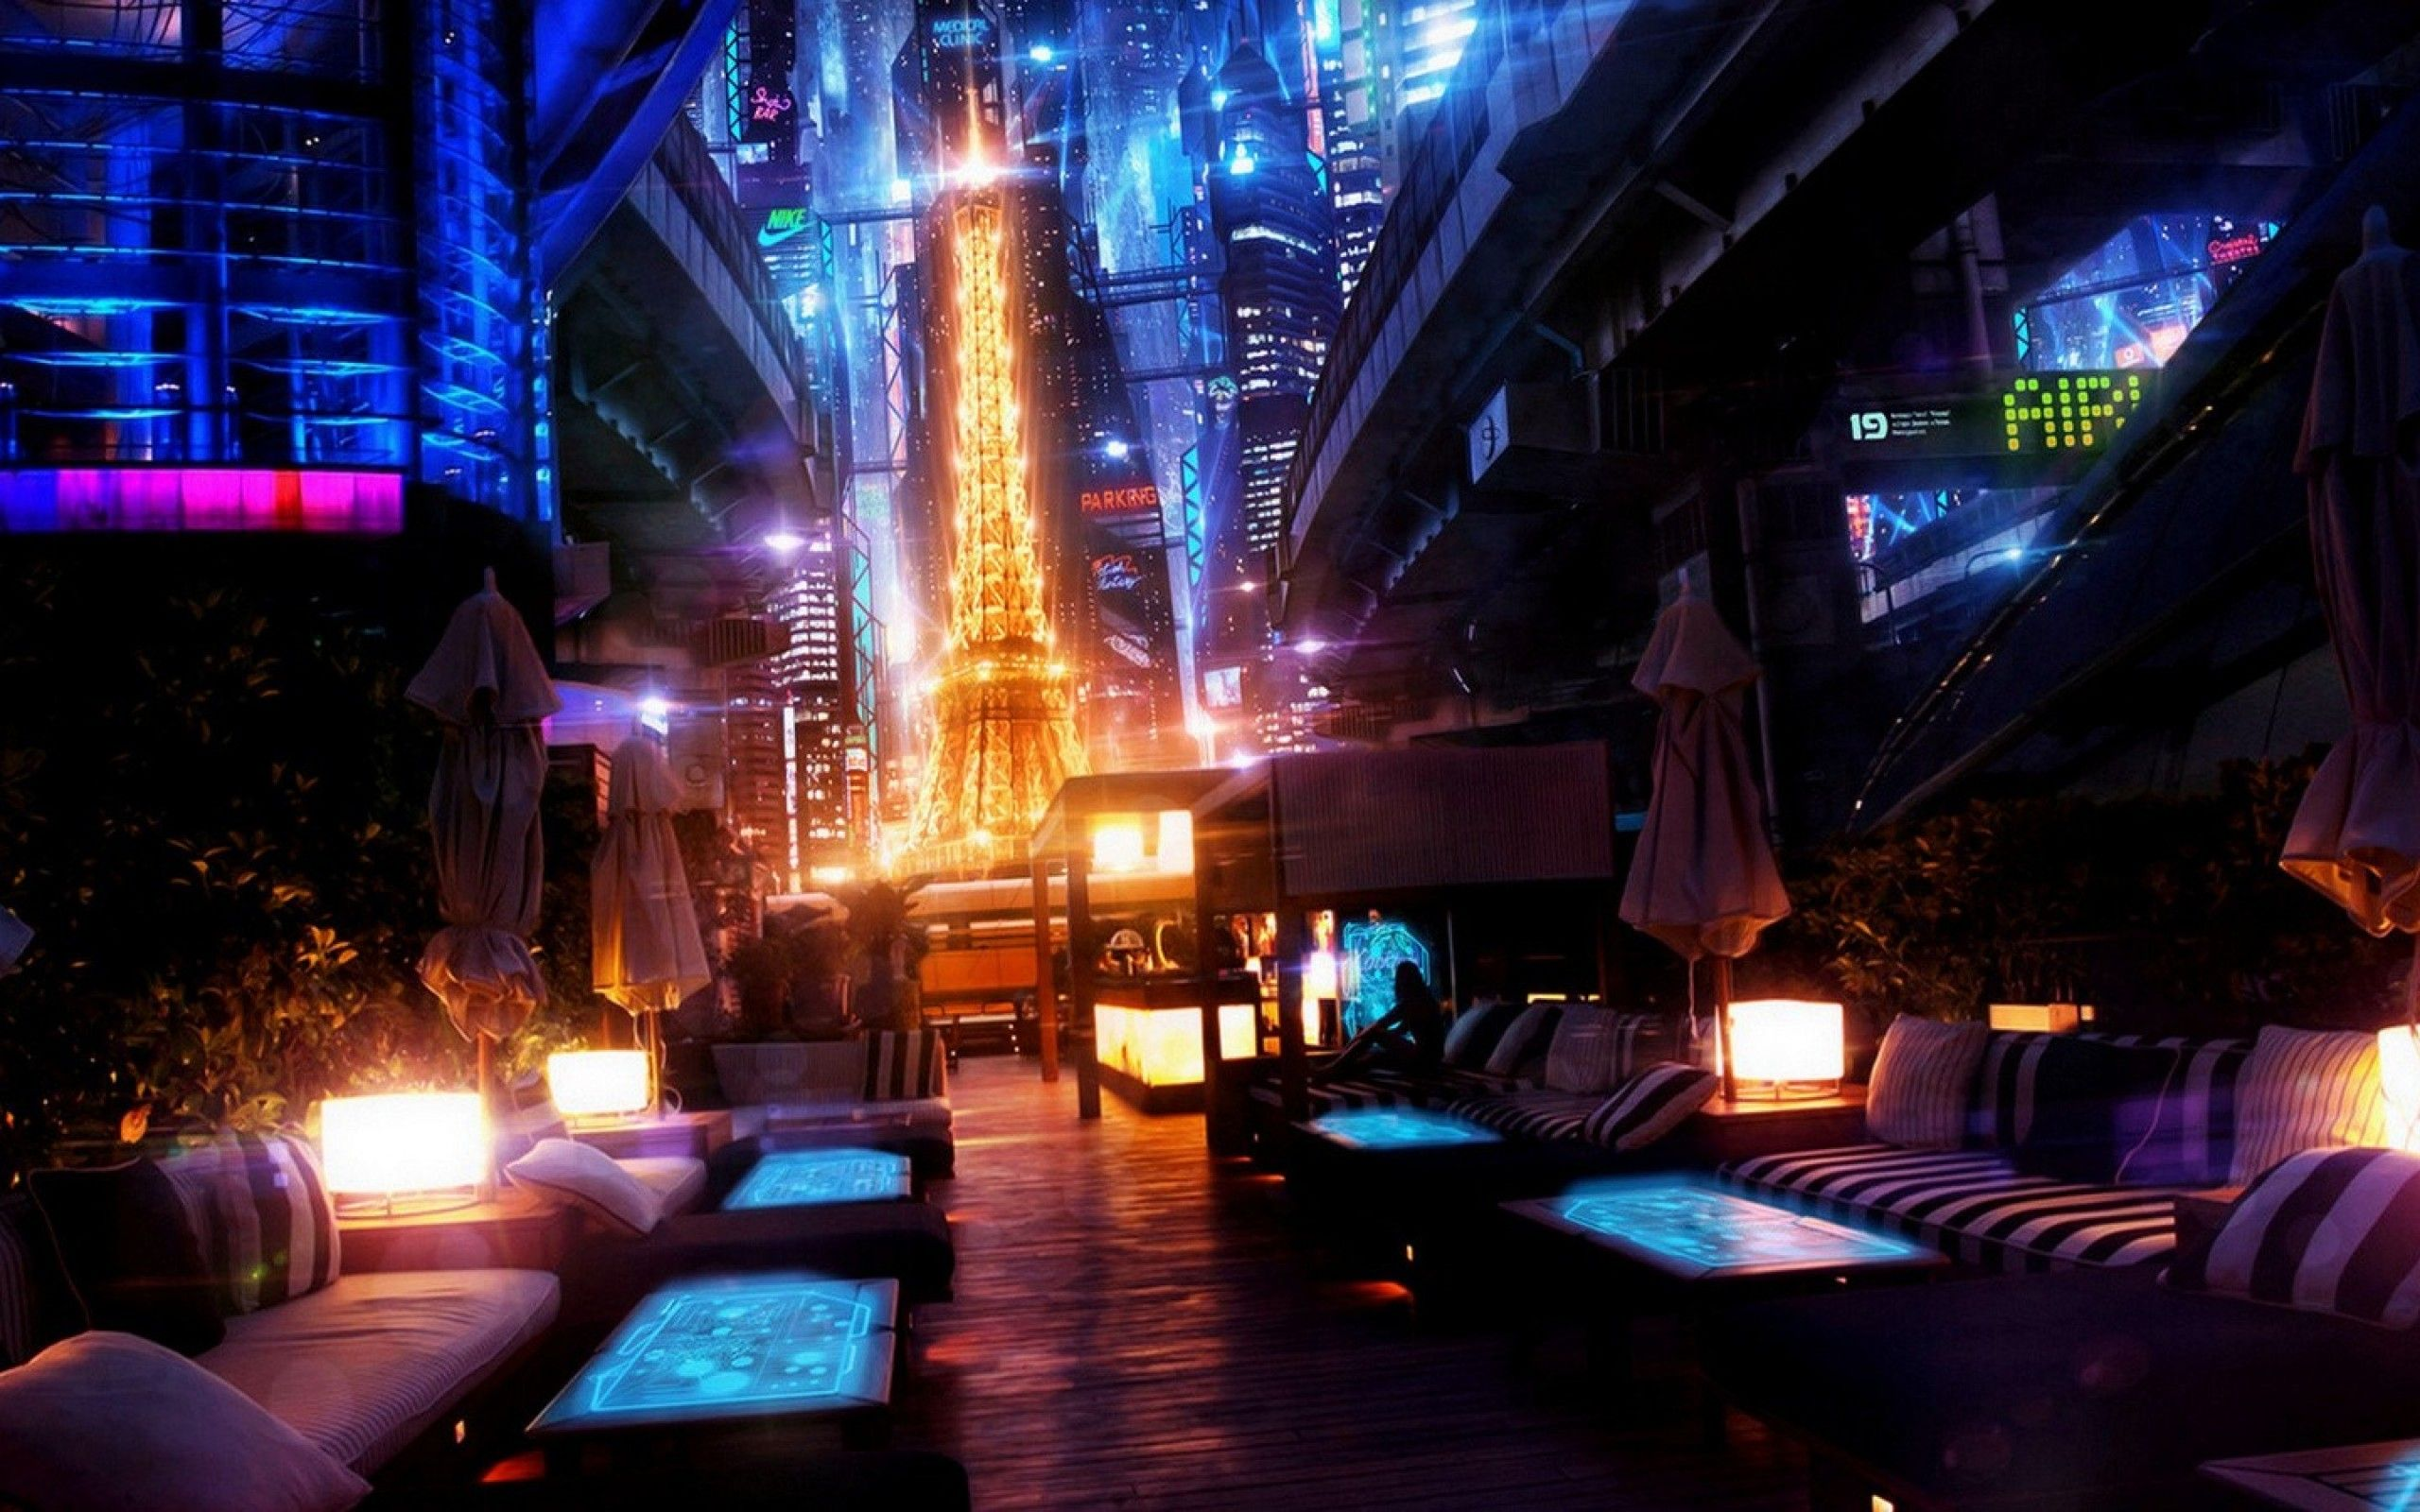 cyberpunk metropolis wallpaper - photo #39